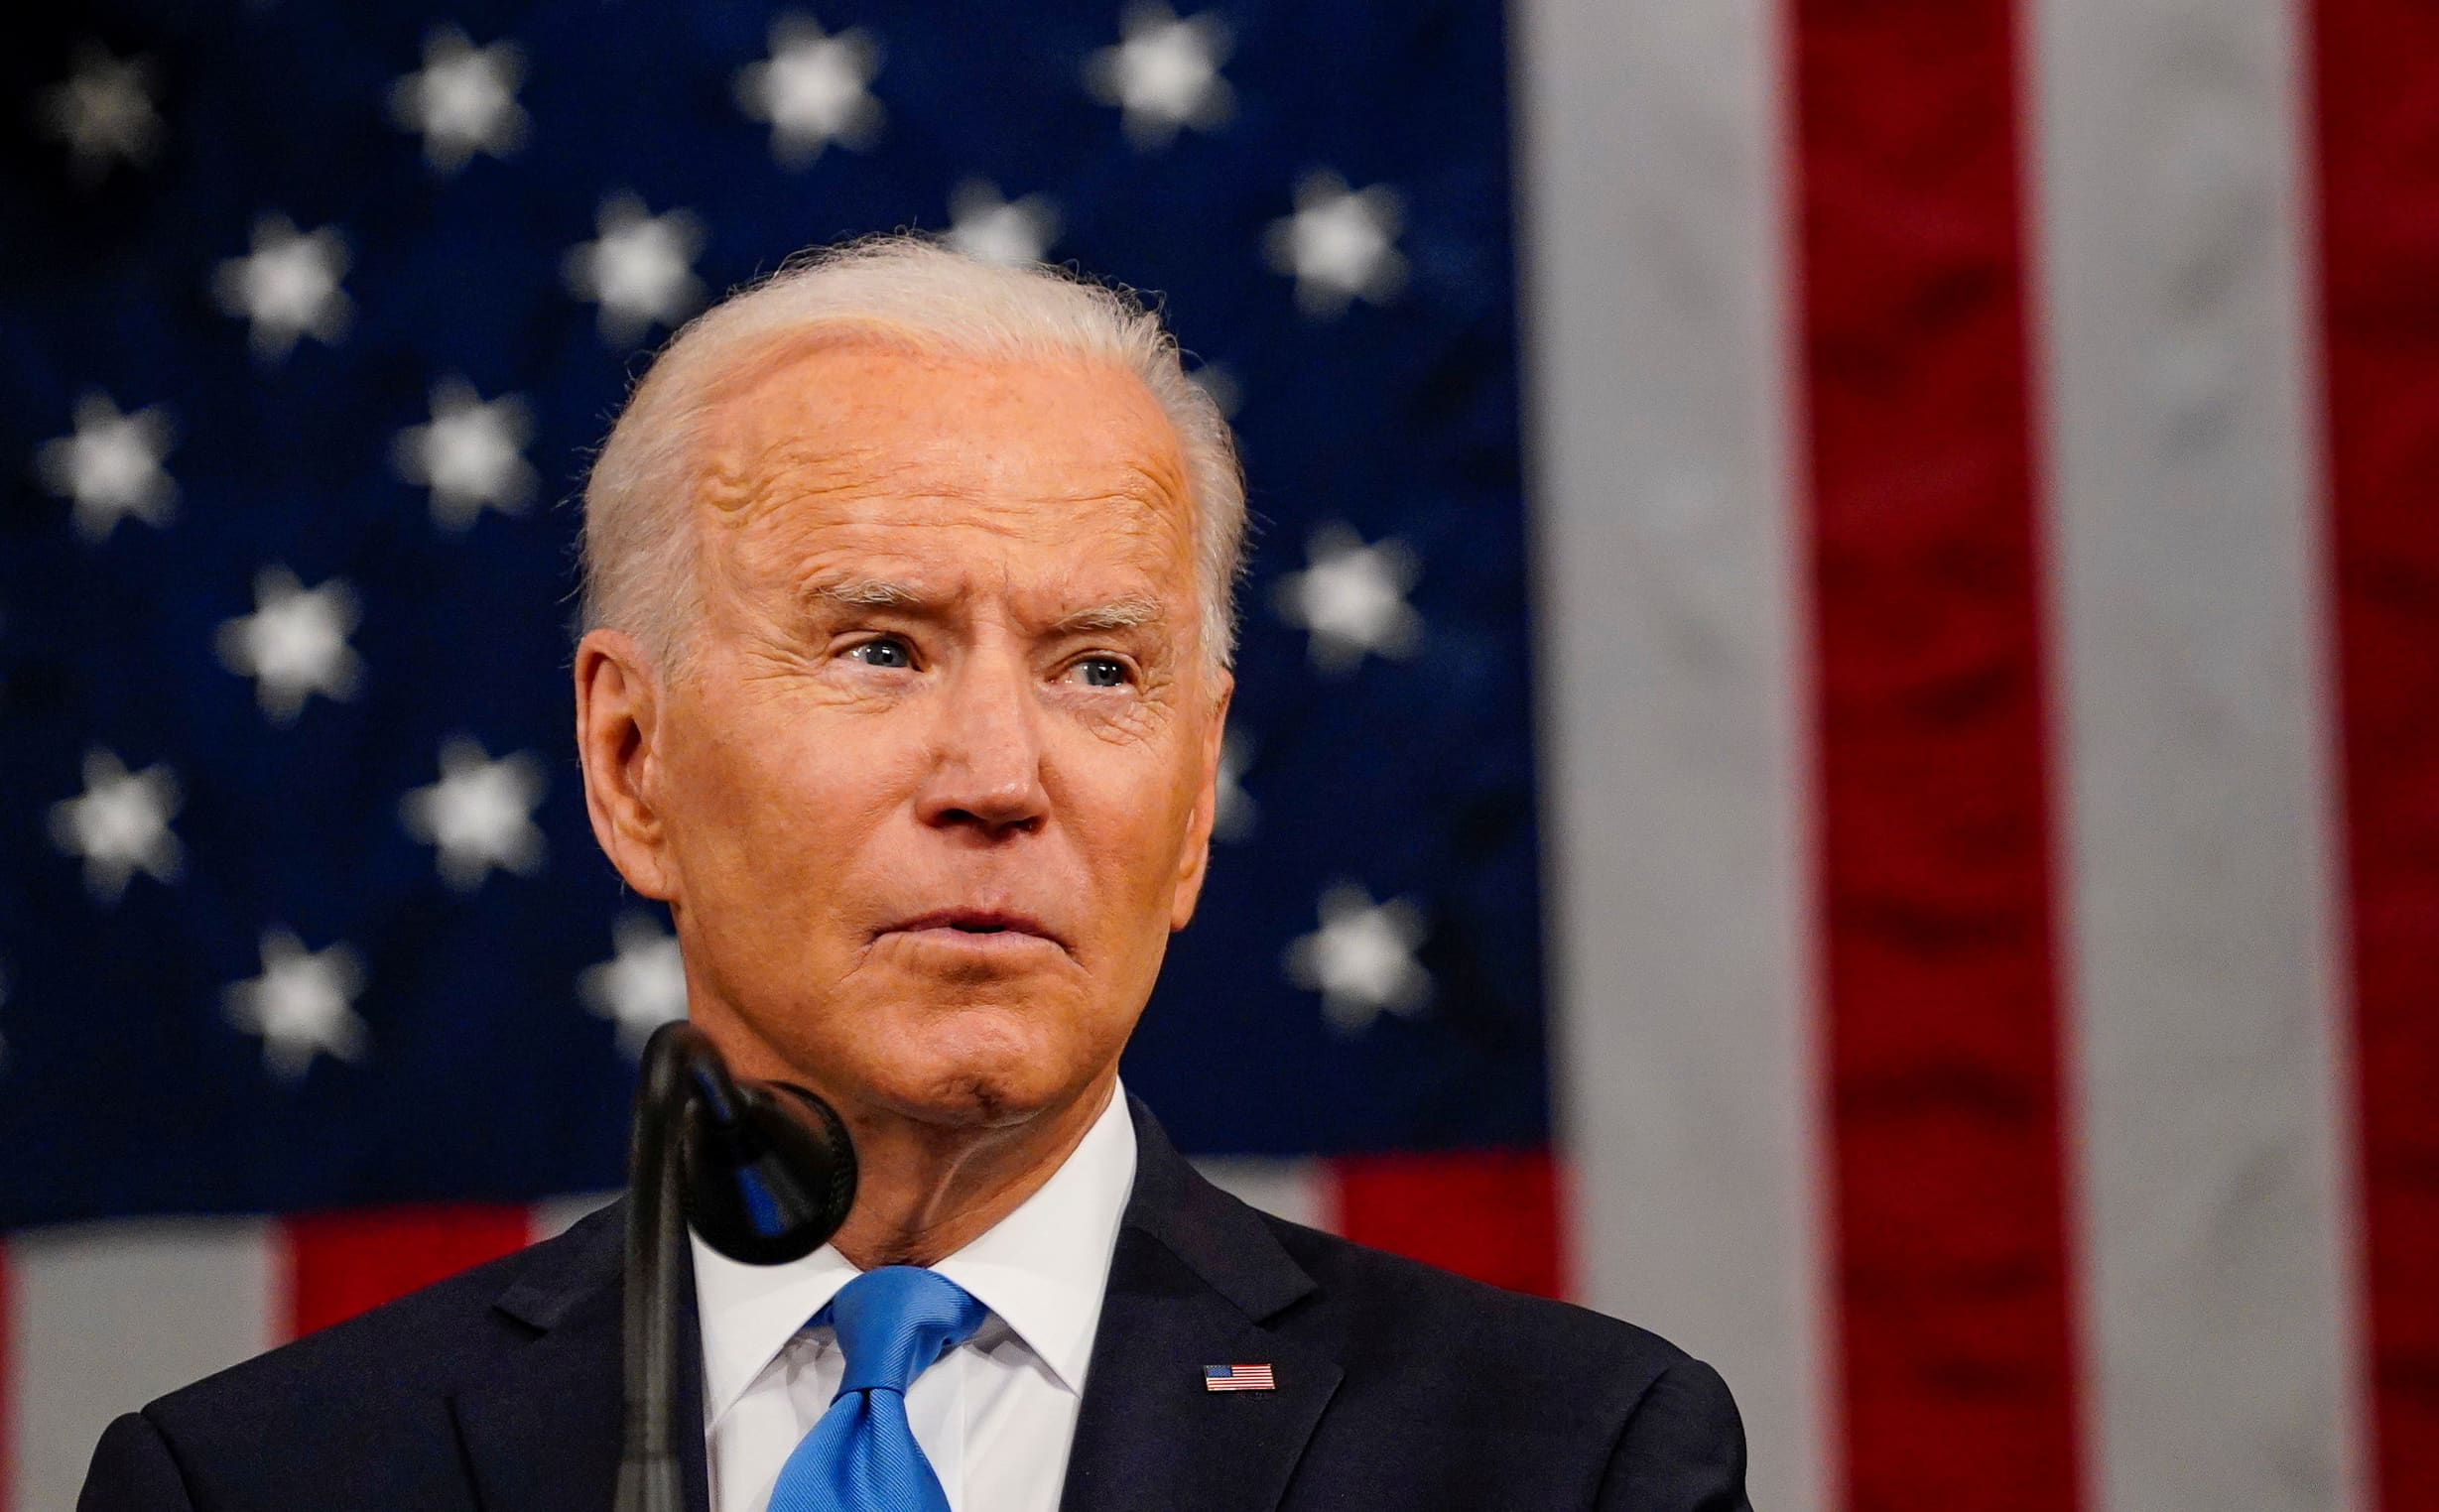 Biden calls for the U.S. to become more competitive against a 'deadly earnest' China